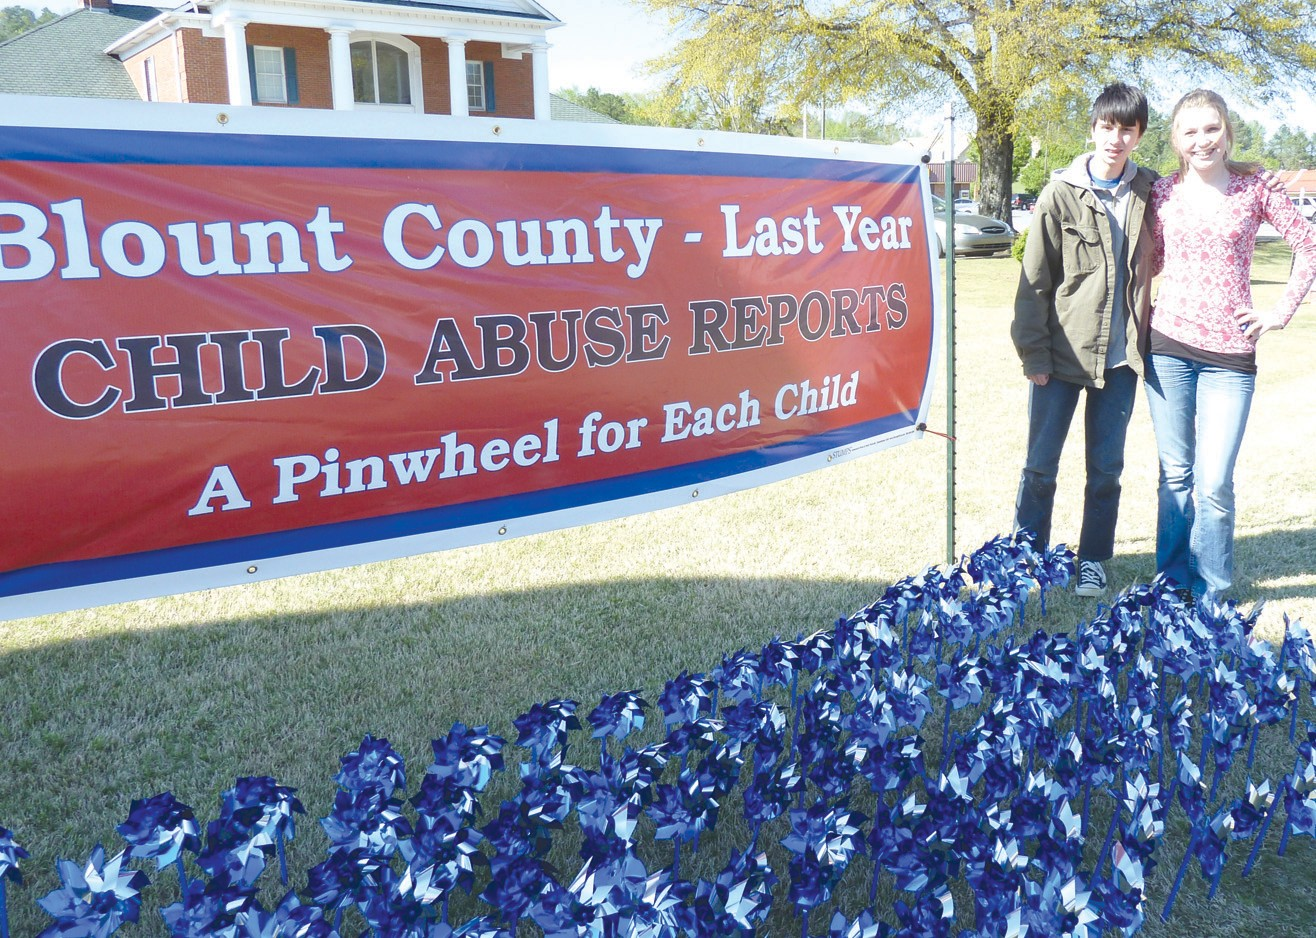 The number of confirmed child abuse cases in Blount County last year was 266. Zach Godwin and Morgan Sargent above know that number because they planted 266 pinwheels in the ground, one for each of those children, as a part of National Child Abuse Prevention Month this April. If you suspect child abuse, don't hesitate, don't agitate, don't investigate. Just call the county Department of Human Resources at 274-5200 and let the professionals take it from there. A child's life could be riding on it. – Ron Gholson